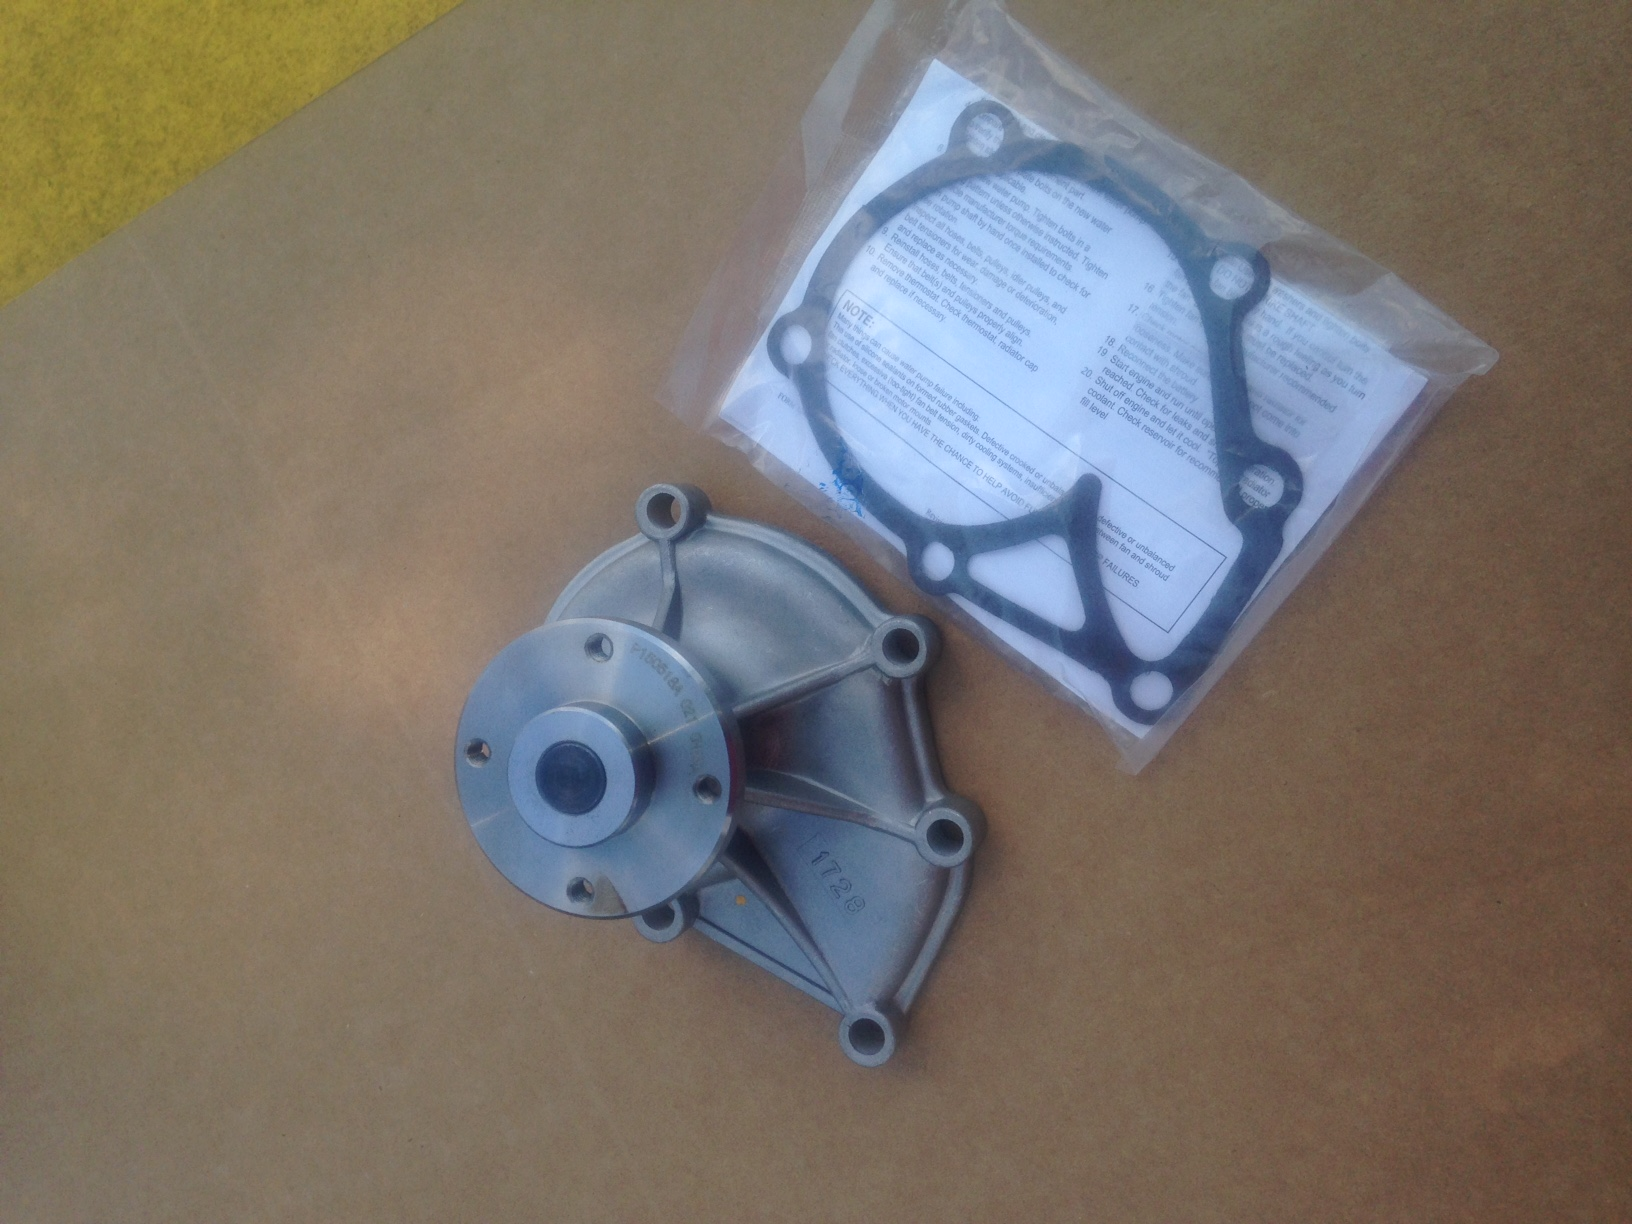 Iseki Water Pump WP-3704 W/Gasket See Description Below